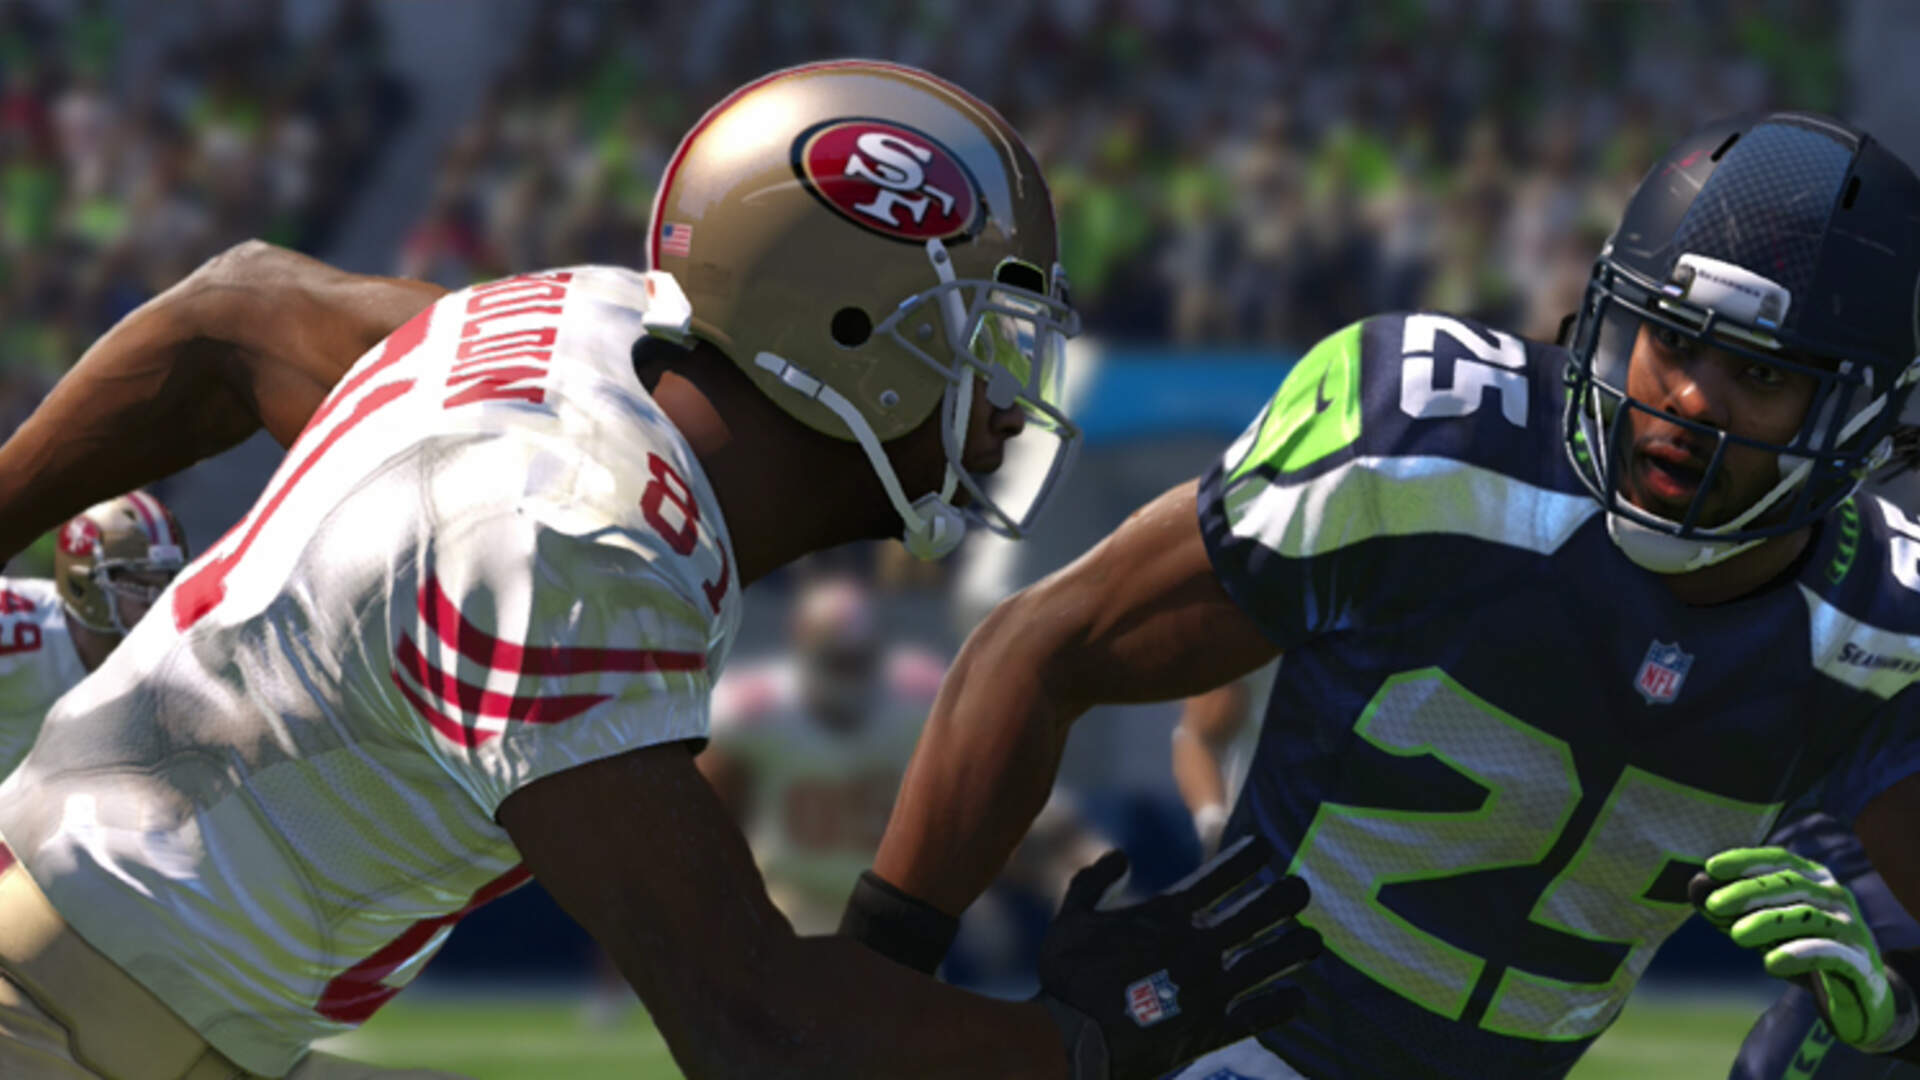 Madden NFL 15 Beginner's Guide: Offense and Defense Tips and Strategies, and Winning Plays